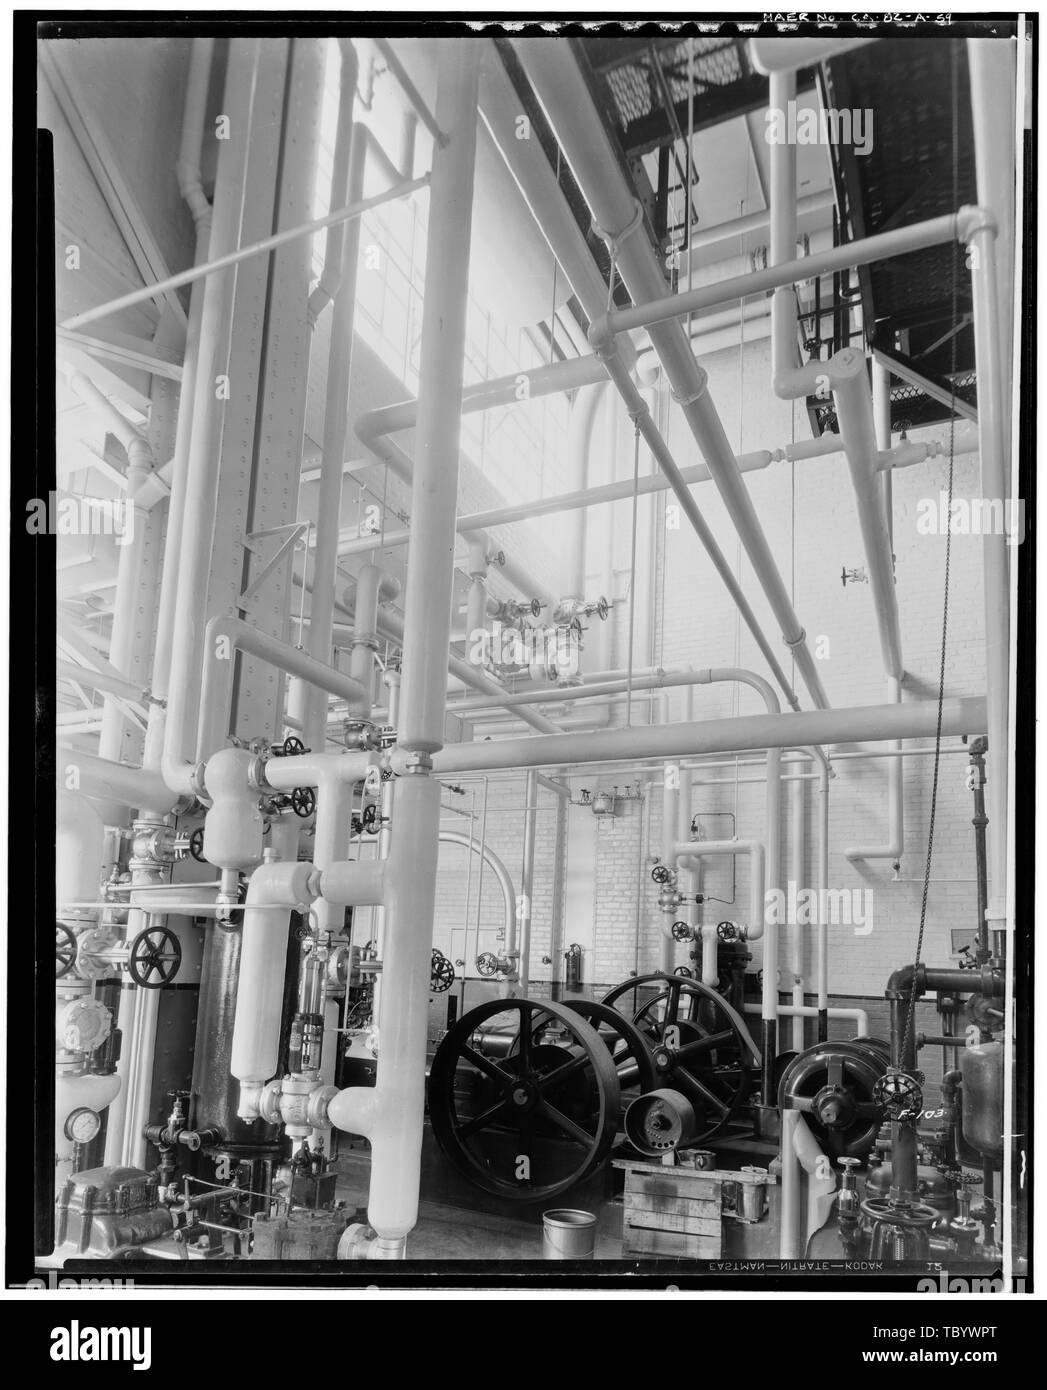 Neg. Nr. F103, Mar 27, 1931 INTERIORWAREHOUSE, South End, INNENRAUM DER KESSELRAUM Ford Motor Company Long Beach Montagewerk, Assembly Building, 700 Henry Ford Avenue, Long Beach, Los Angeles County, CA Stockbild